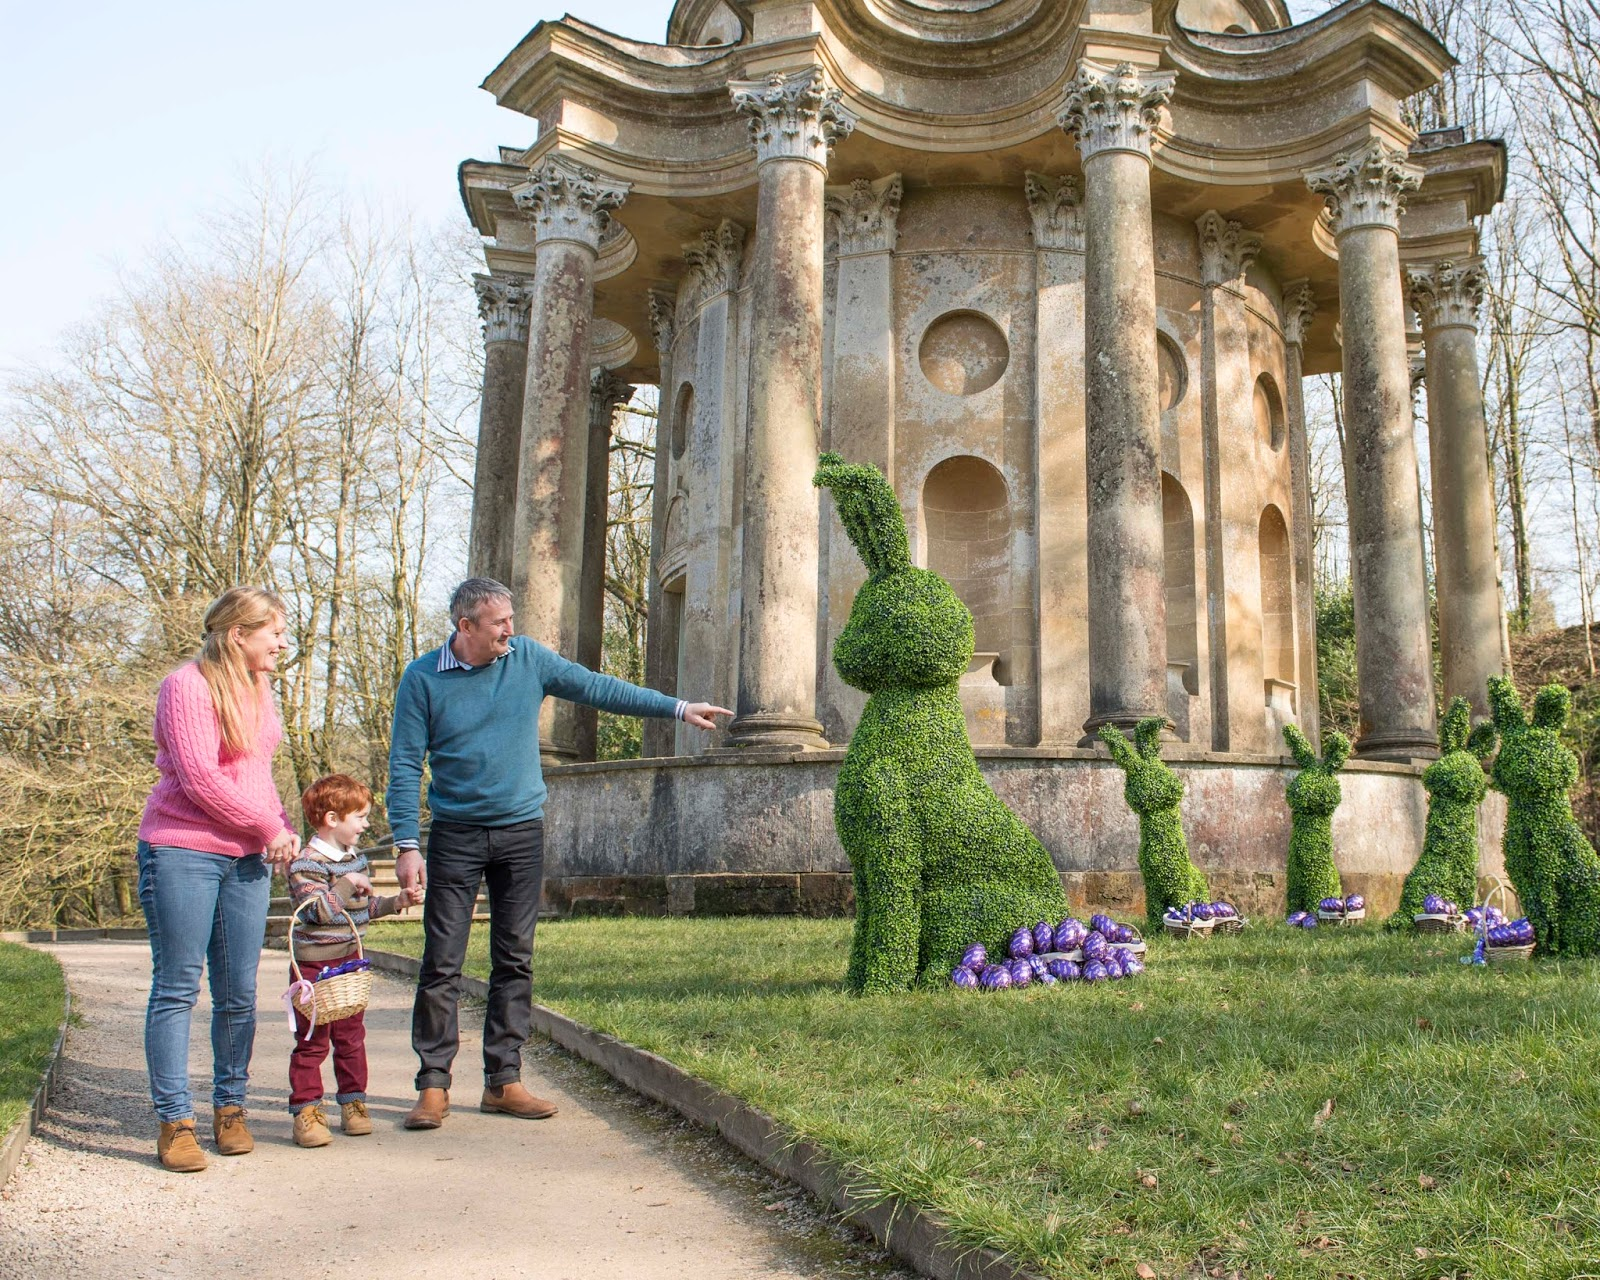 A family on the National Trust Easter Egg Hunt in partnership with Cadbury's